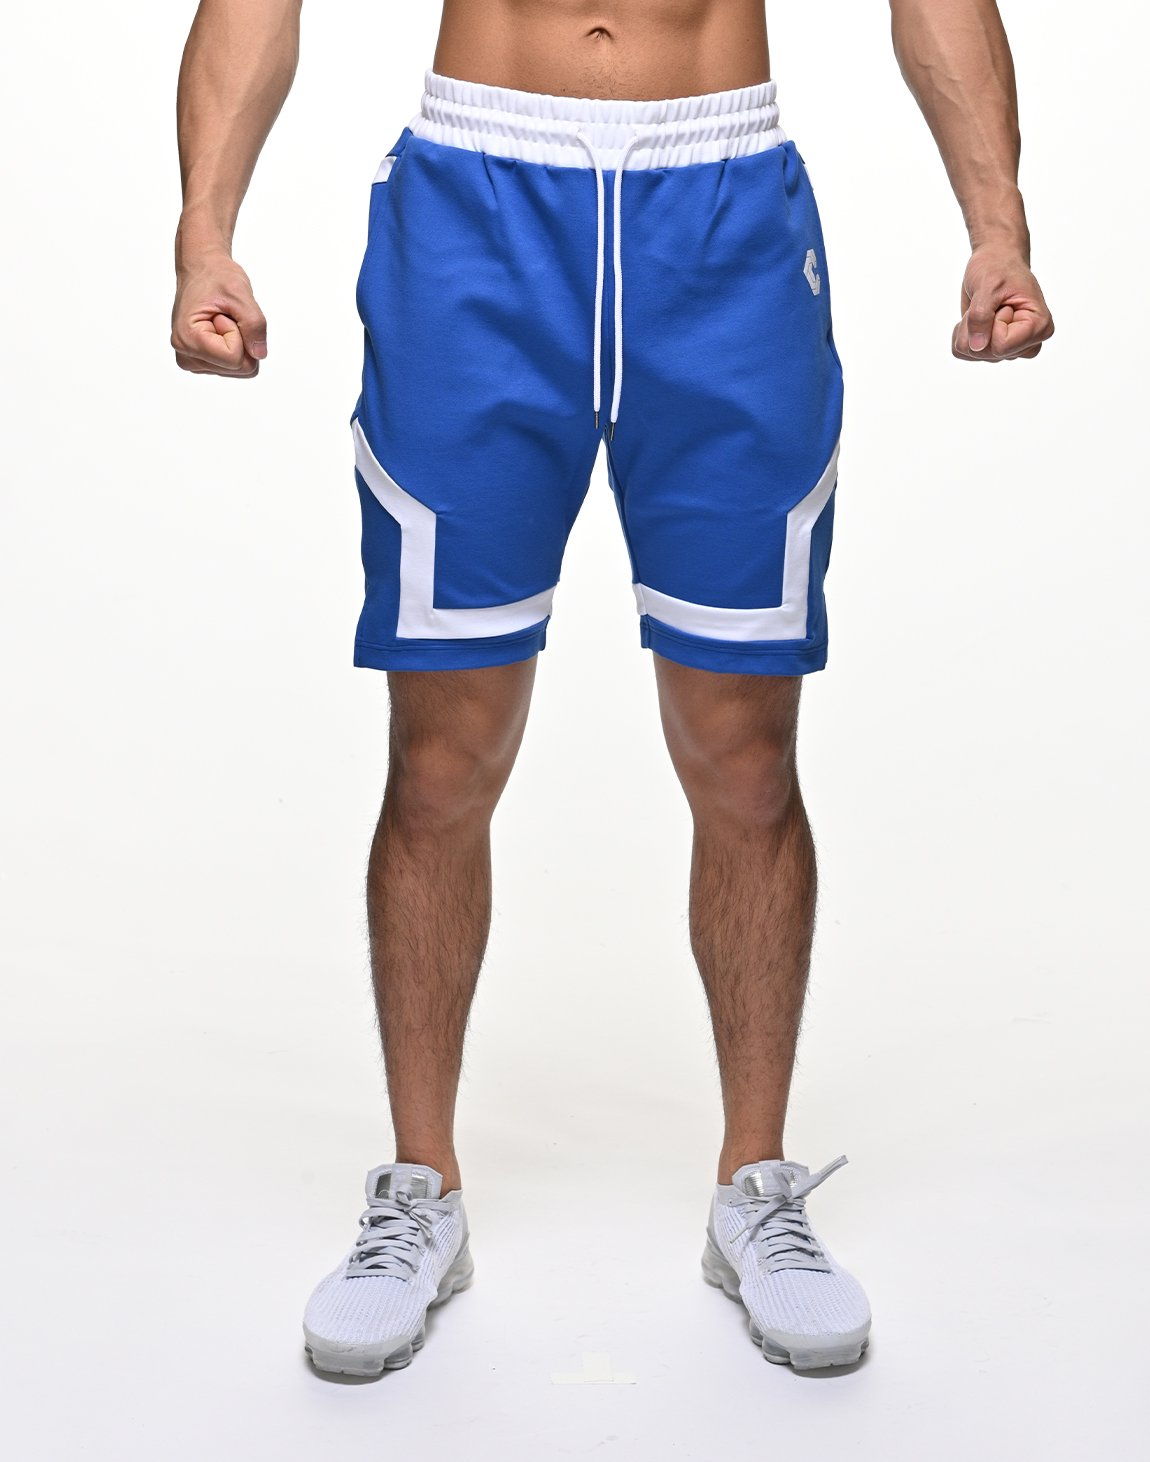 <img class='new_mark_img1' src='https://img.shop-pro.jp/img/new/icons55.gif' style='border:none;display:inline;margin:0px;padding:0px;width:auto;' />CRONOS BACK LOGO SHORTS【BLUE】